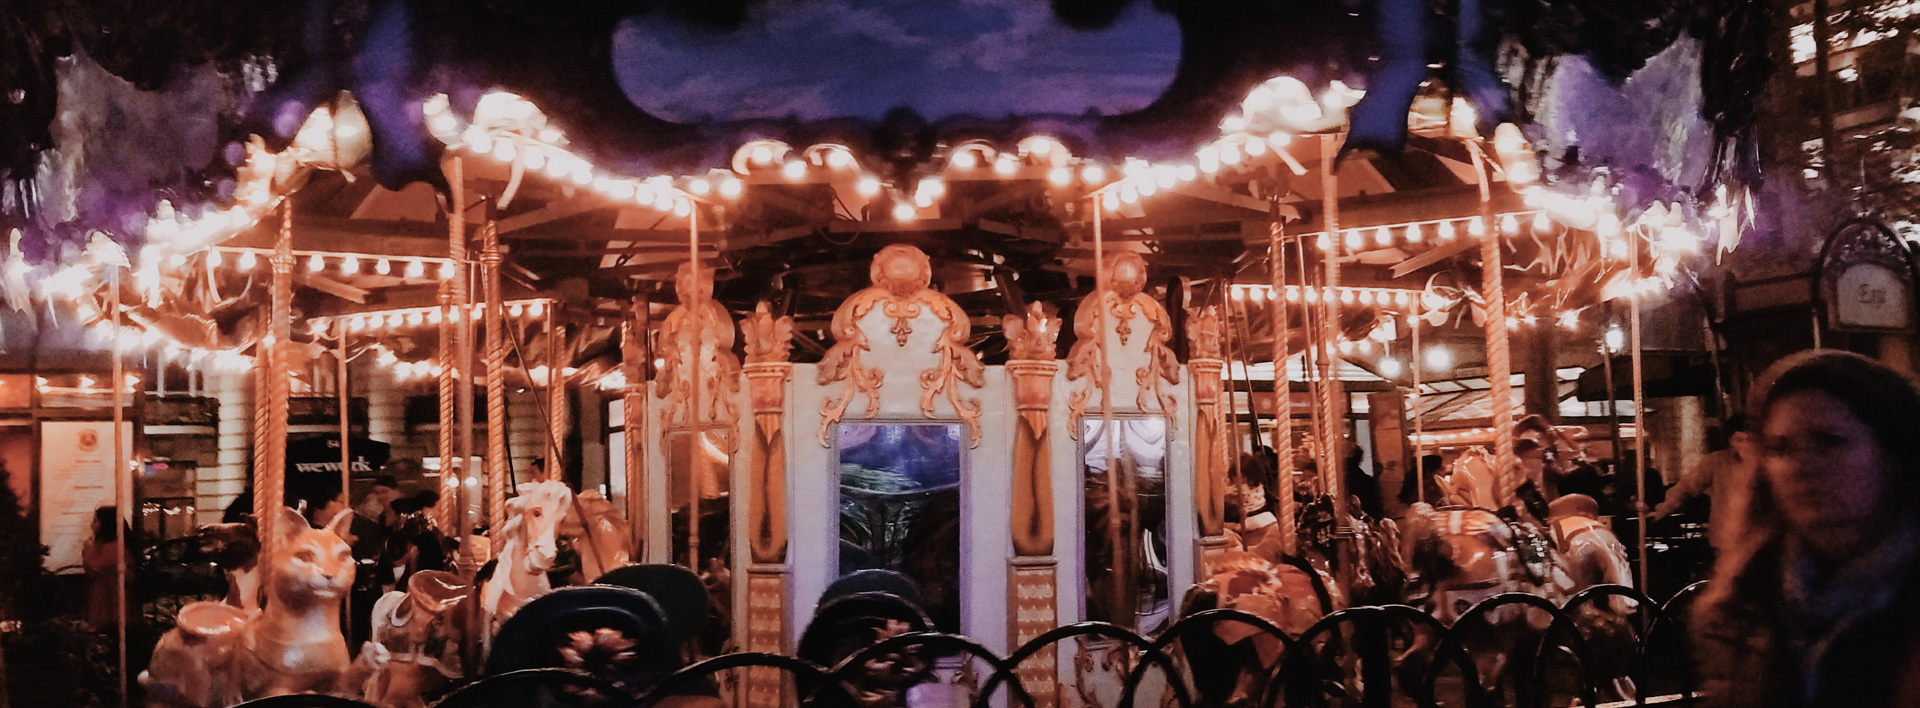 Carousel at night, Elisa Quintana's photo LIGHT SHOW OF CHAOS, the December 2017 1st Place CUNY Photo Challenge winner